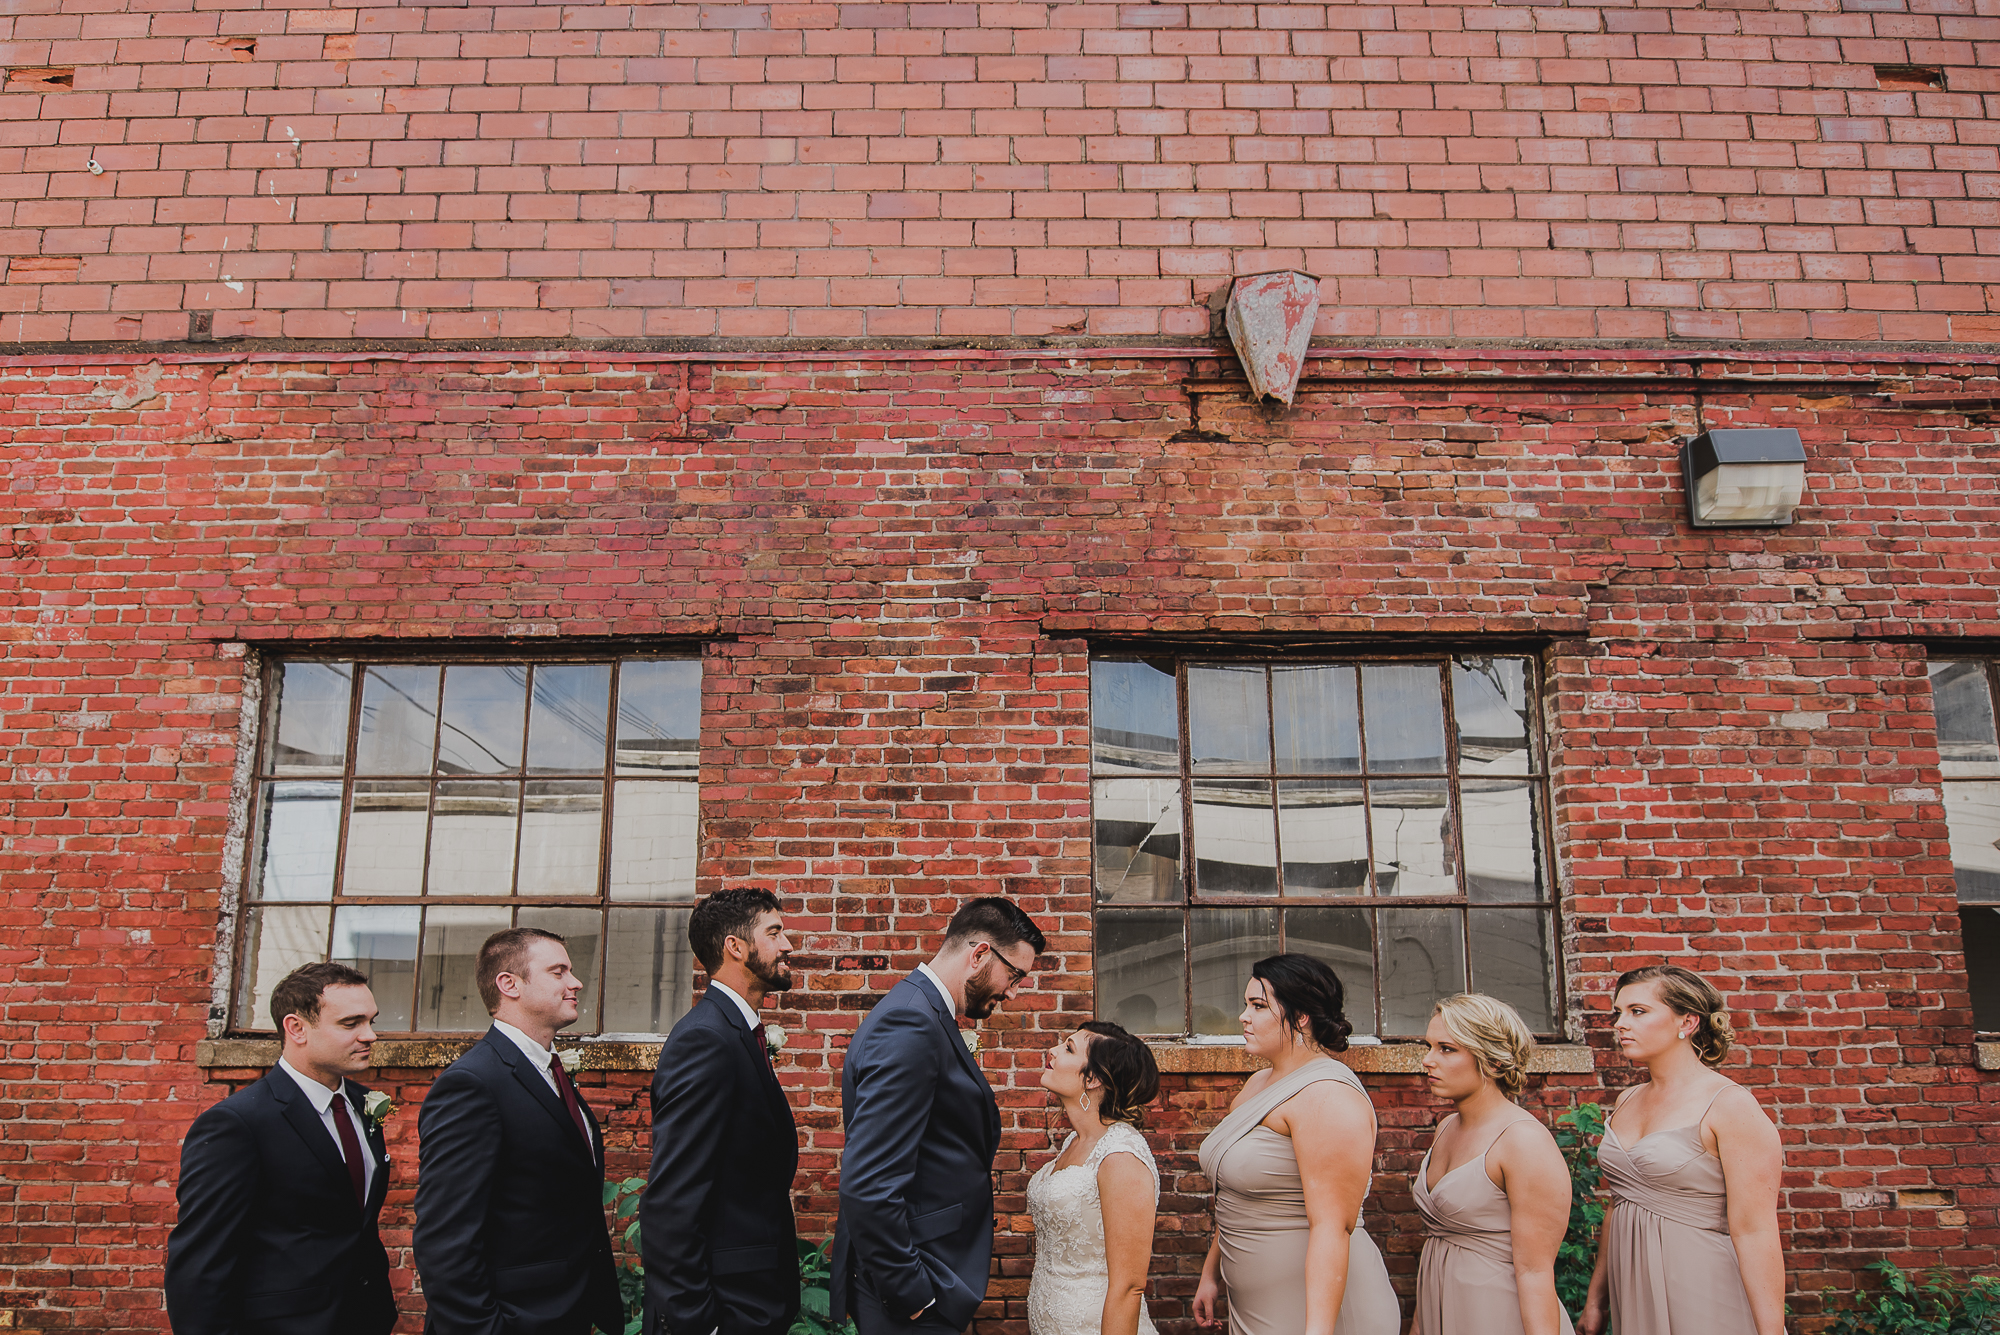 Melissa Cervantes Photography _ Kelsey + Ben Junebug Weddings Submission-91.jpg